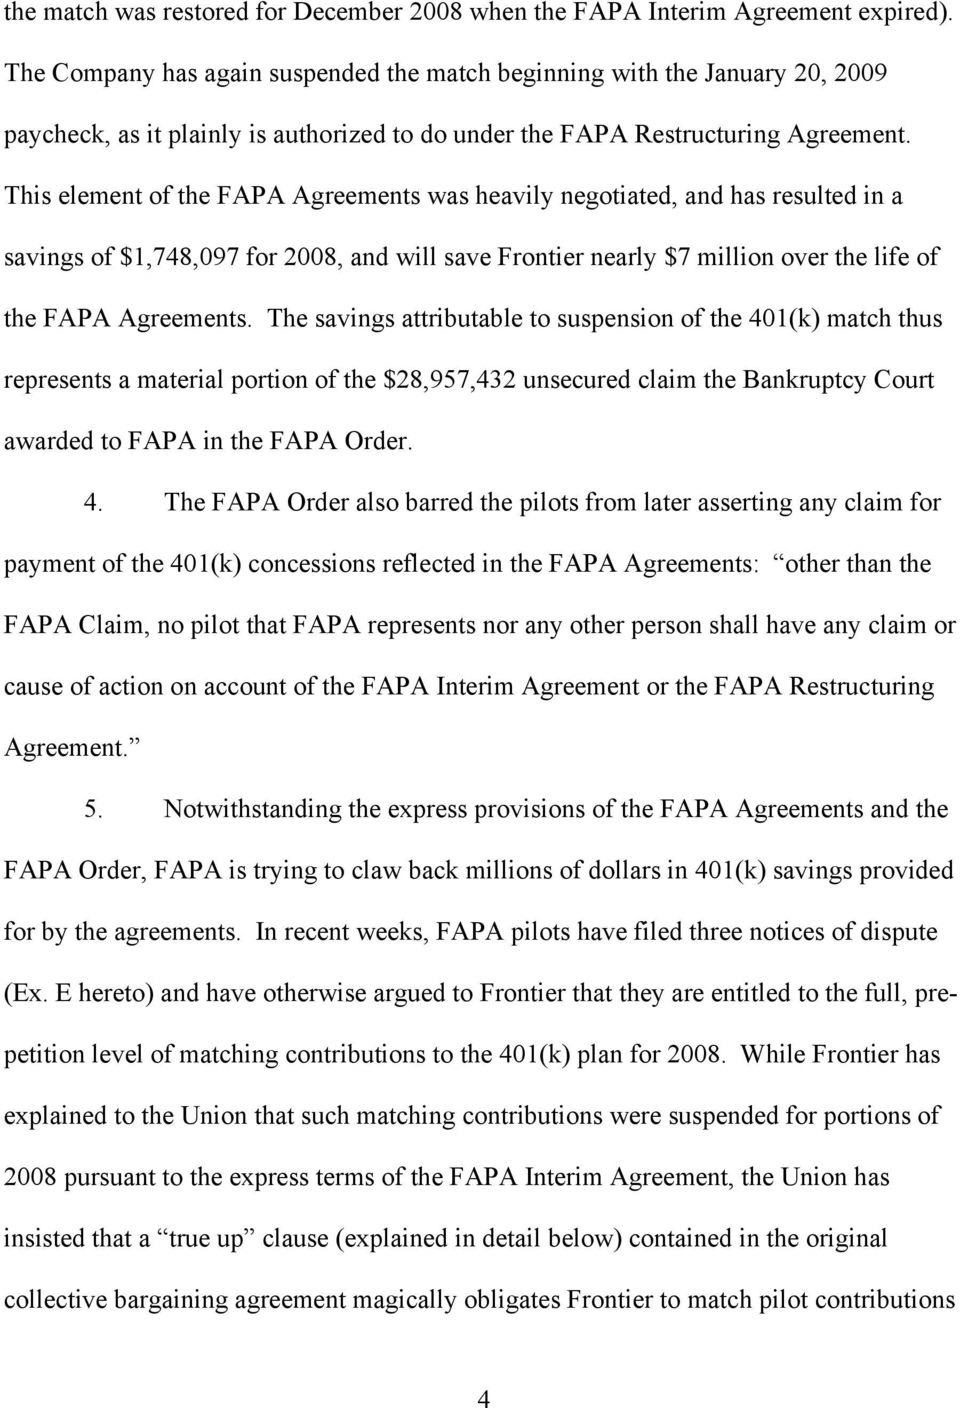 This element of the FAPA Agreements was heavily negotiated, and has resulted in a savings of $1,748,097 for 2008, and will save Frontier nearly $7 million over the life of the FAPA Agreements.